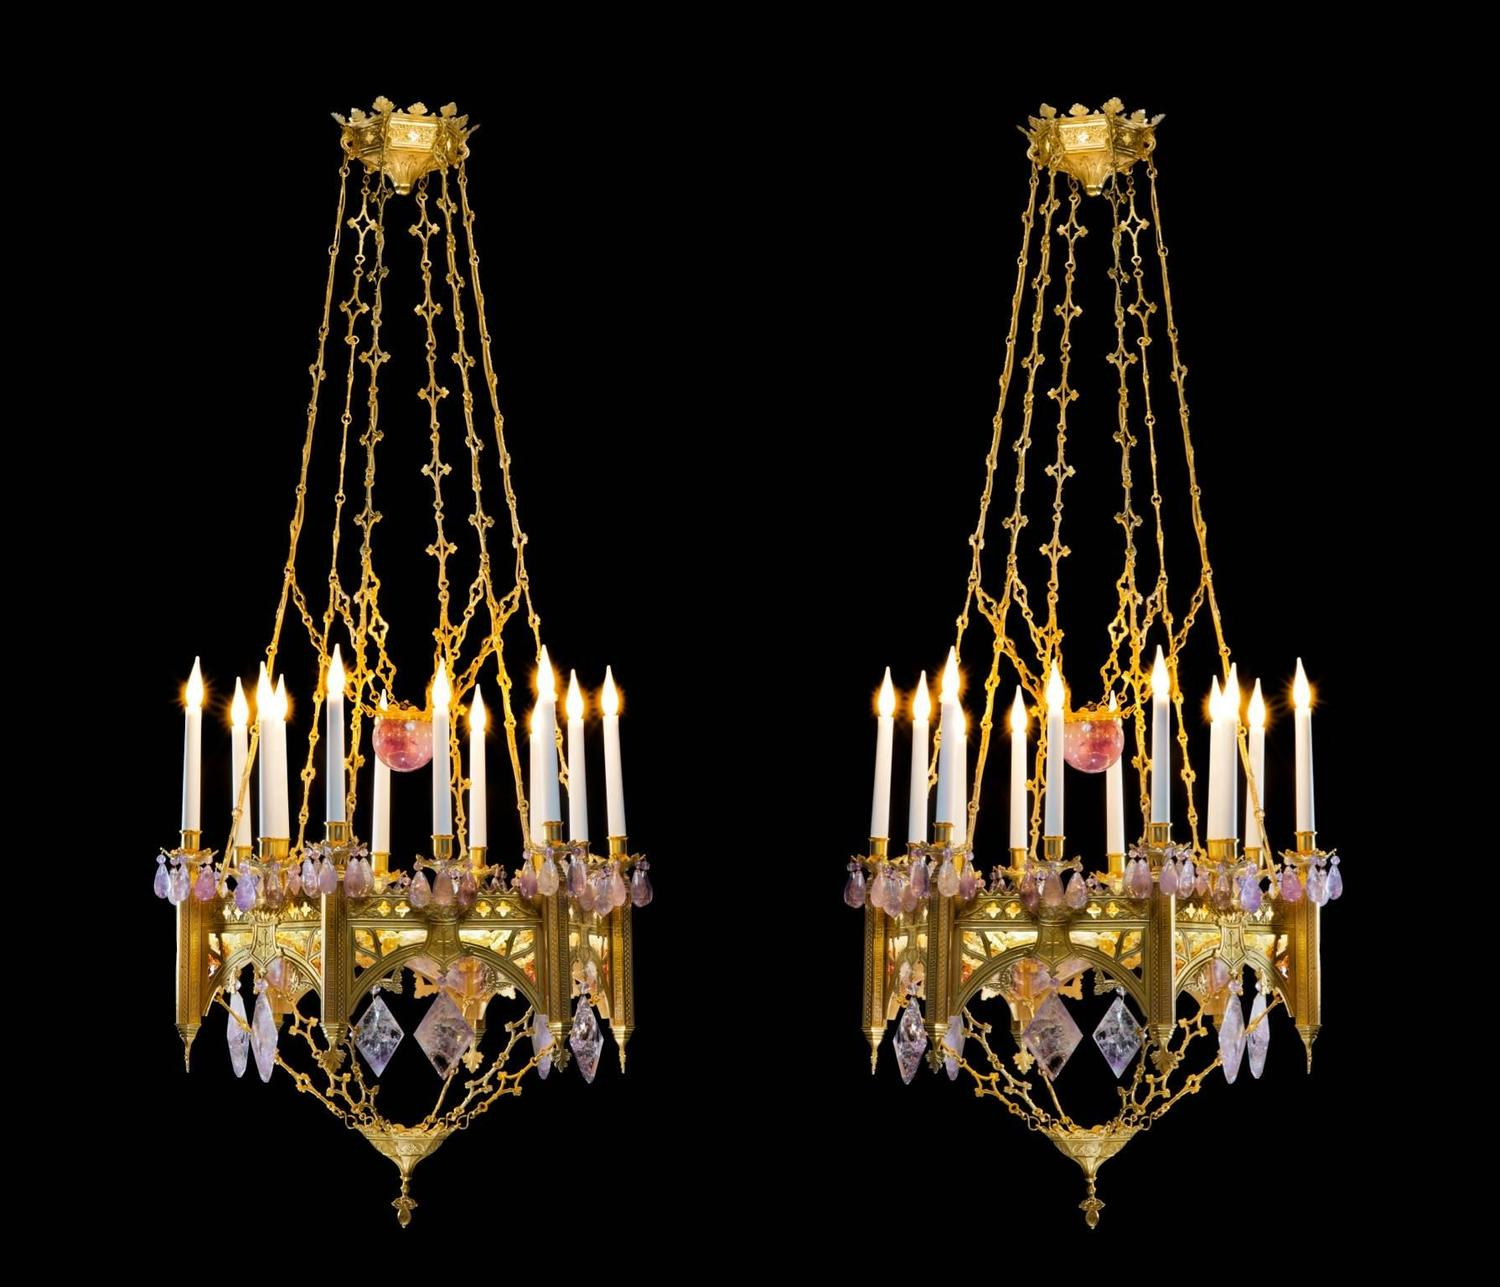 pair of neo gothic style chandeliers in amethyst and